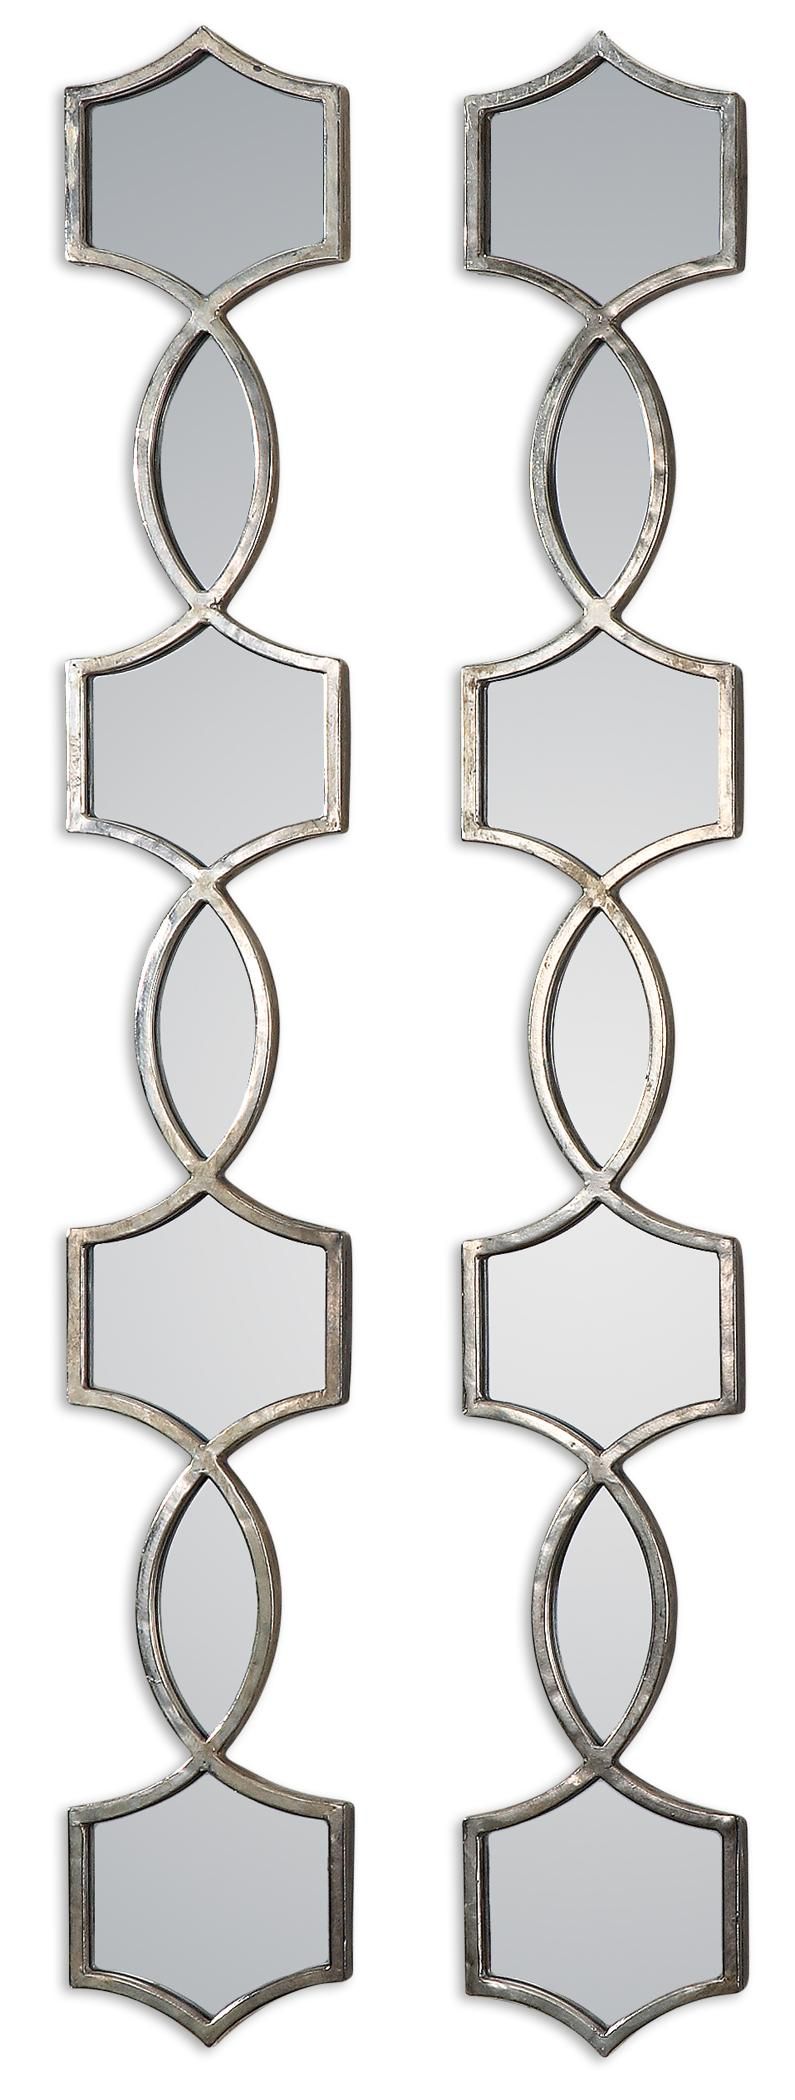 Uttermost Mirrors Vizela Metal Mirrors Set of 2 - Item Number: 12856